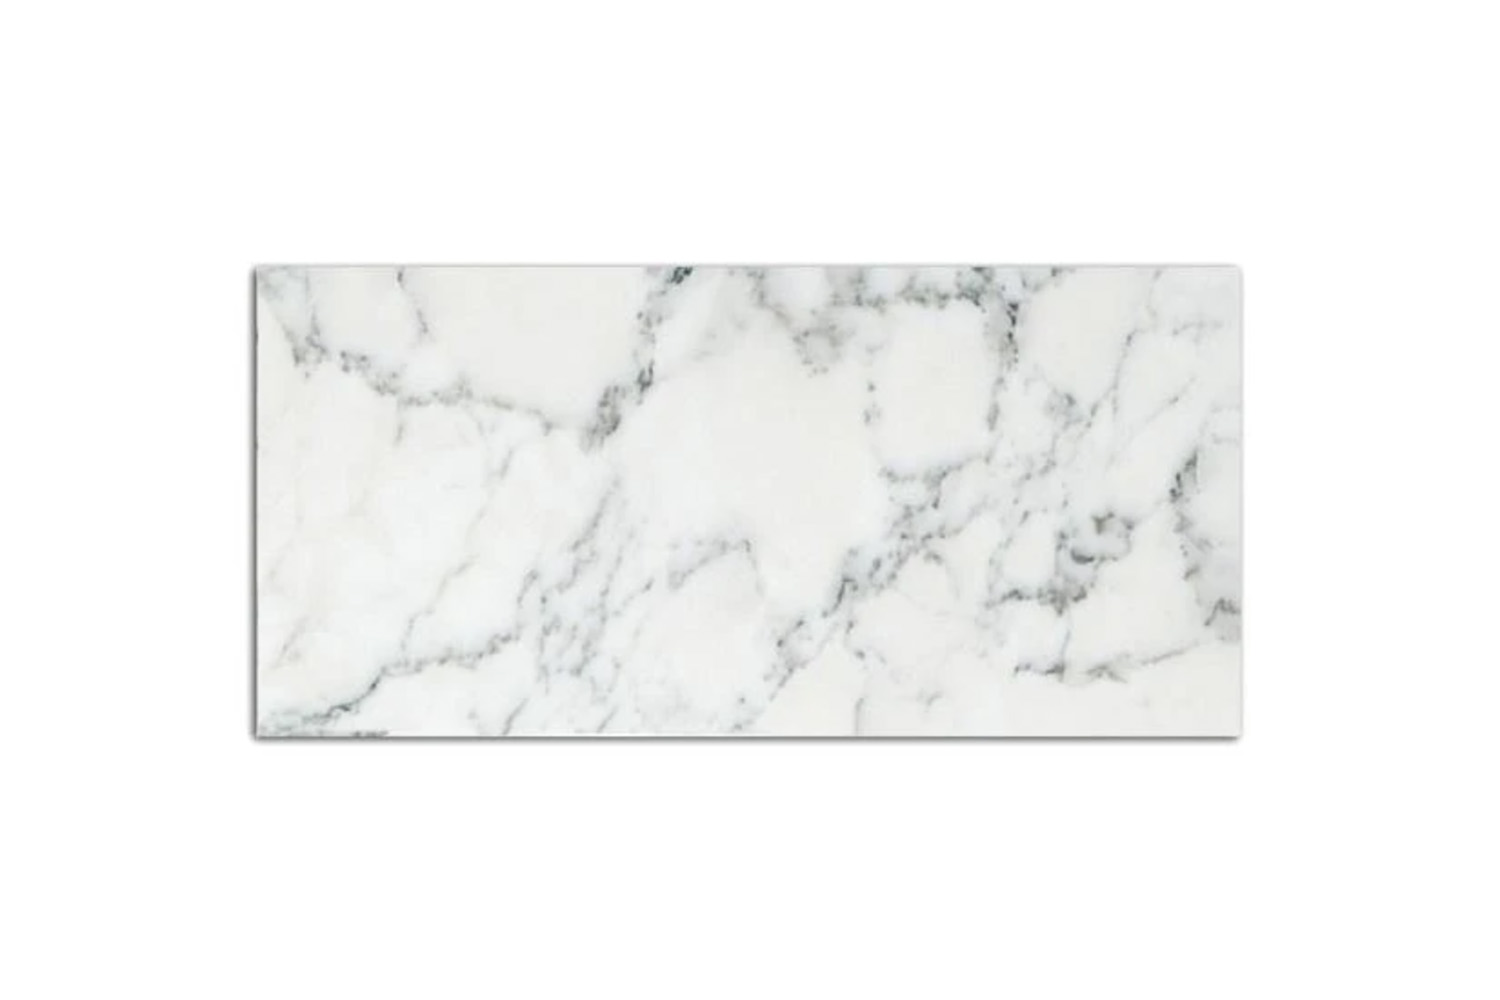 the countertops are done in an arabecscato marble like the arabescato altissimo 13